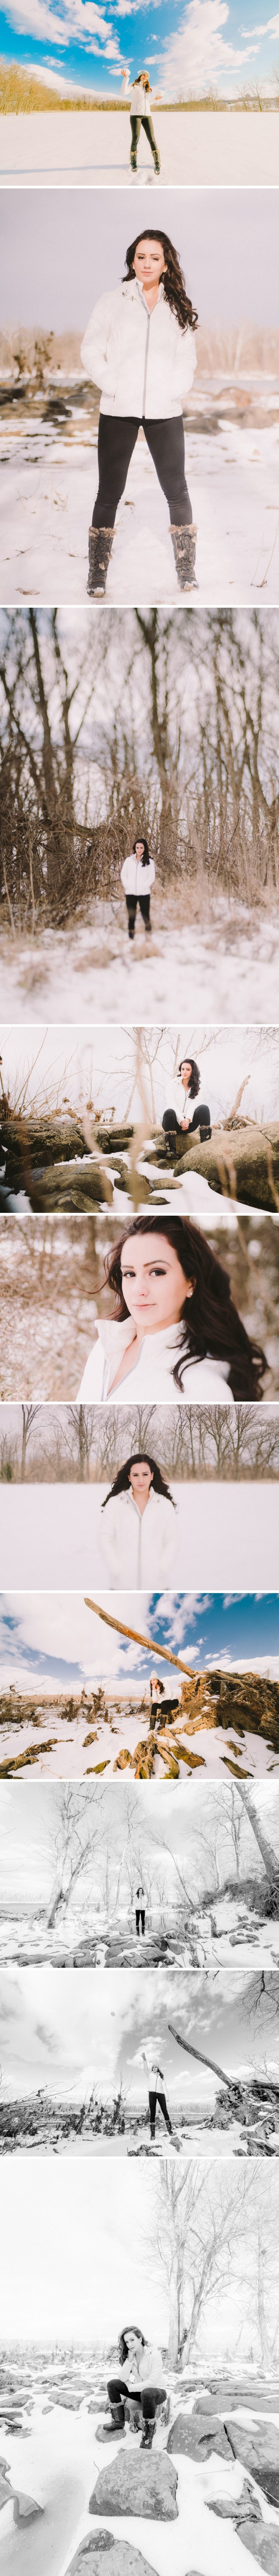 Cleri Models Mia B. photo shoot in the snow along the Potomac River